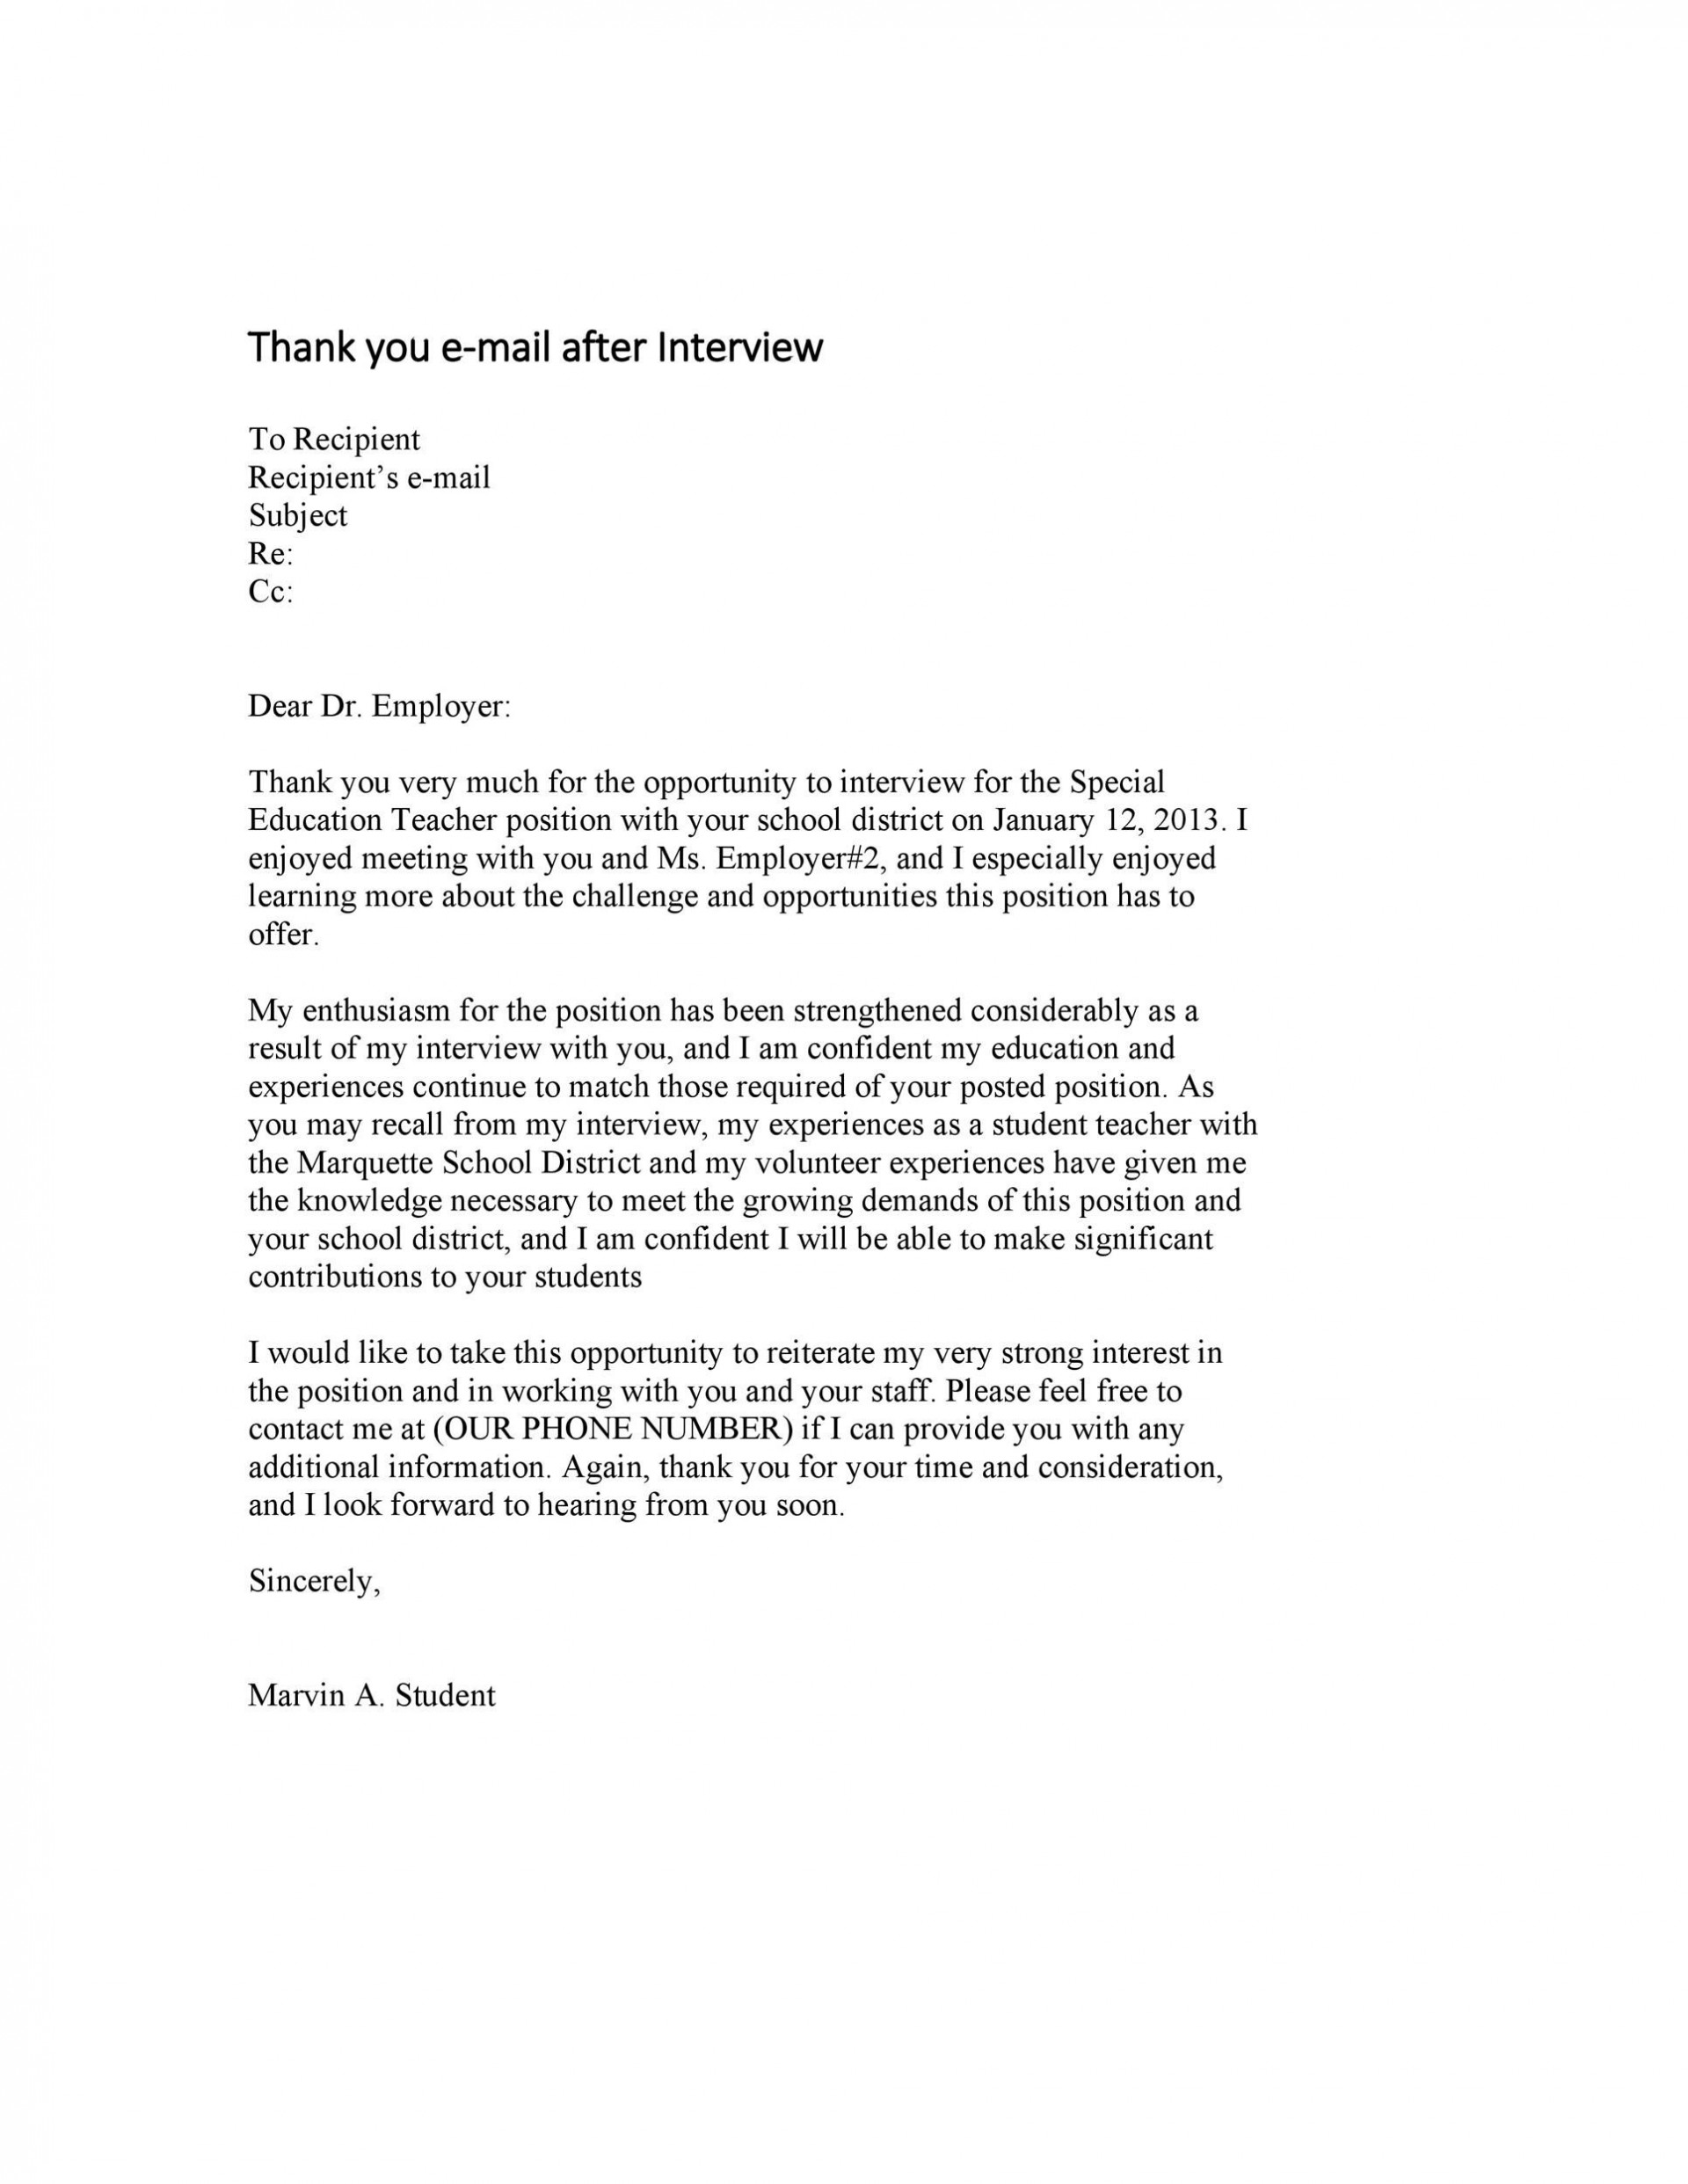 007 Excellent Thank You Note Template For Interview Design  Card Example After Letter Job1920